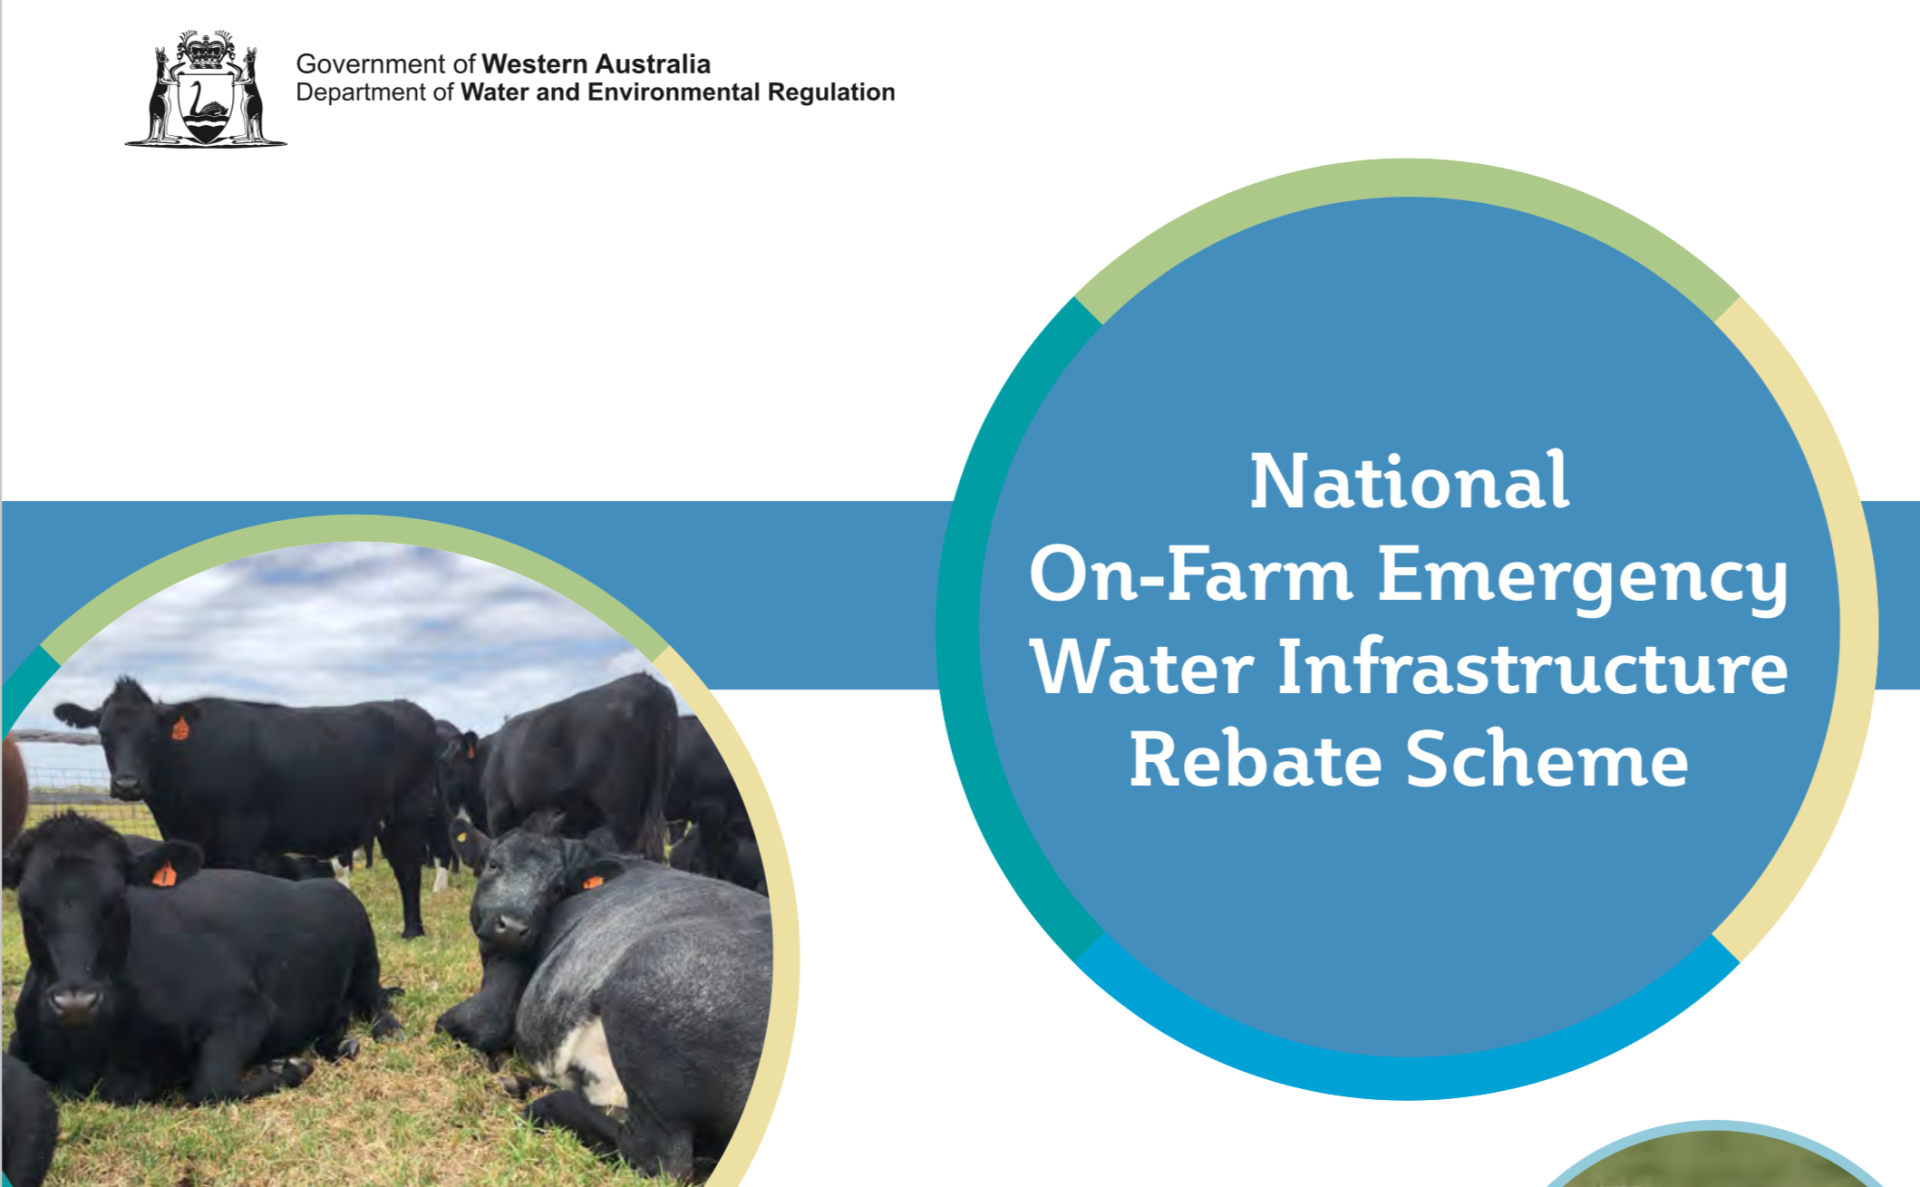 National On-Farm Emergency Water Infrastructure Rebate Scheme